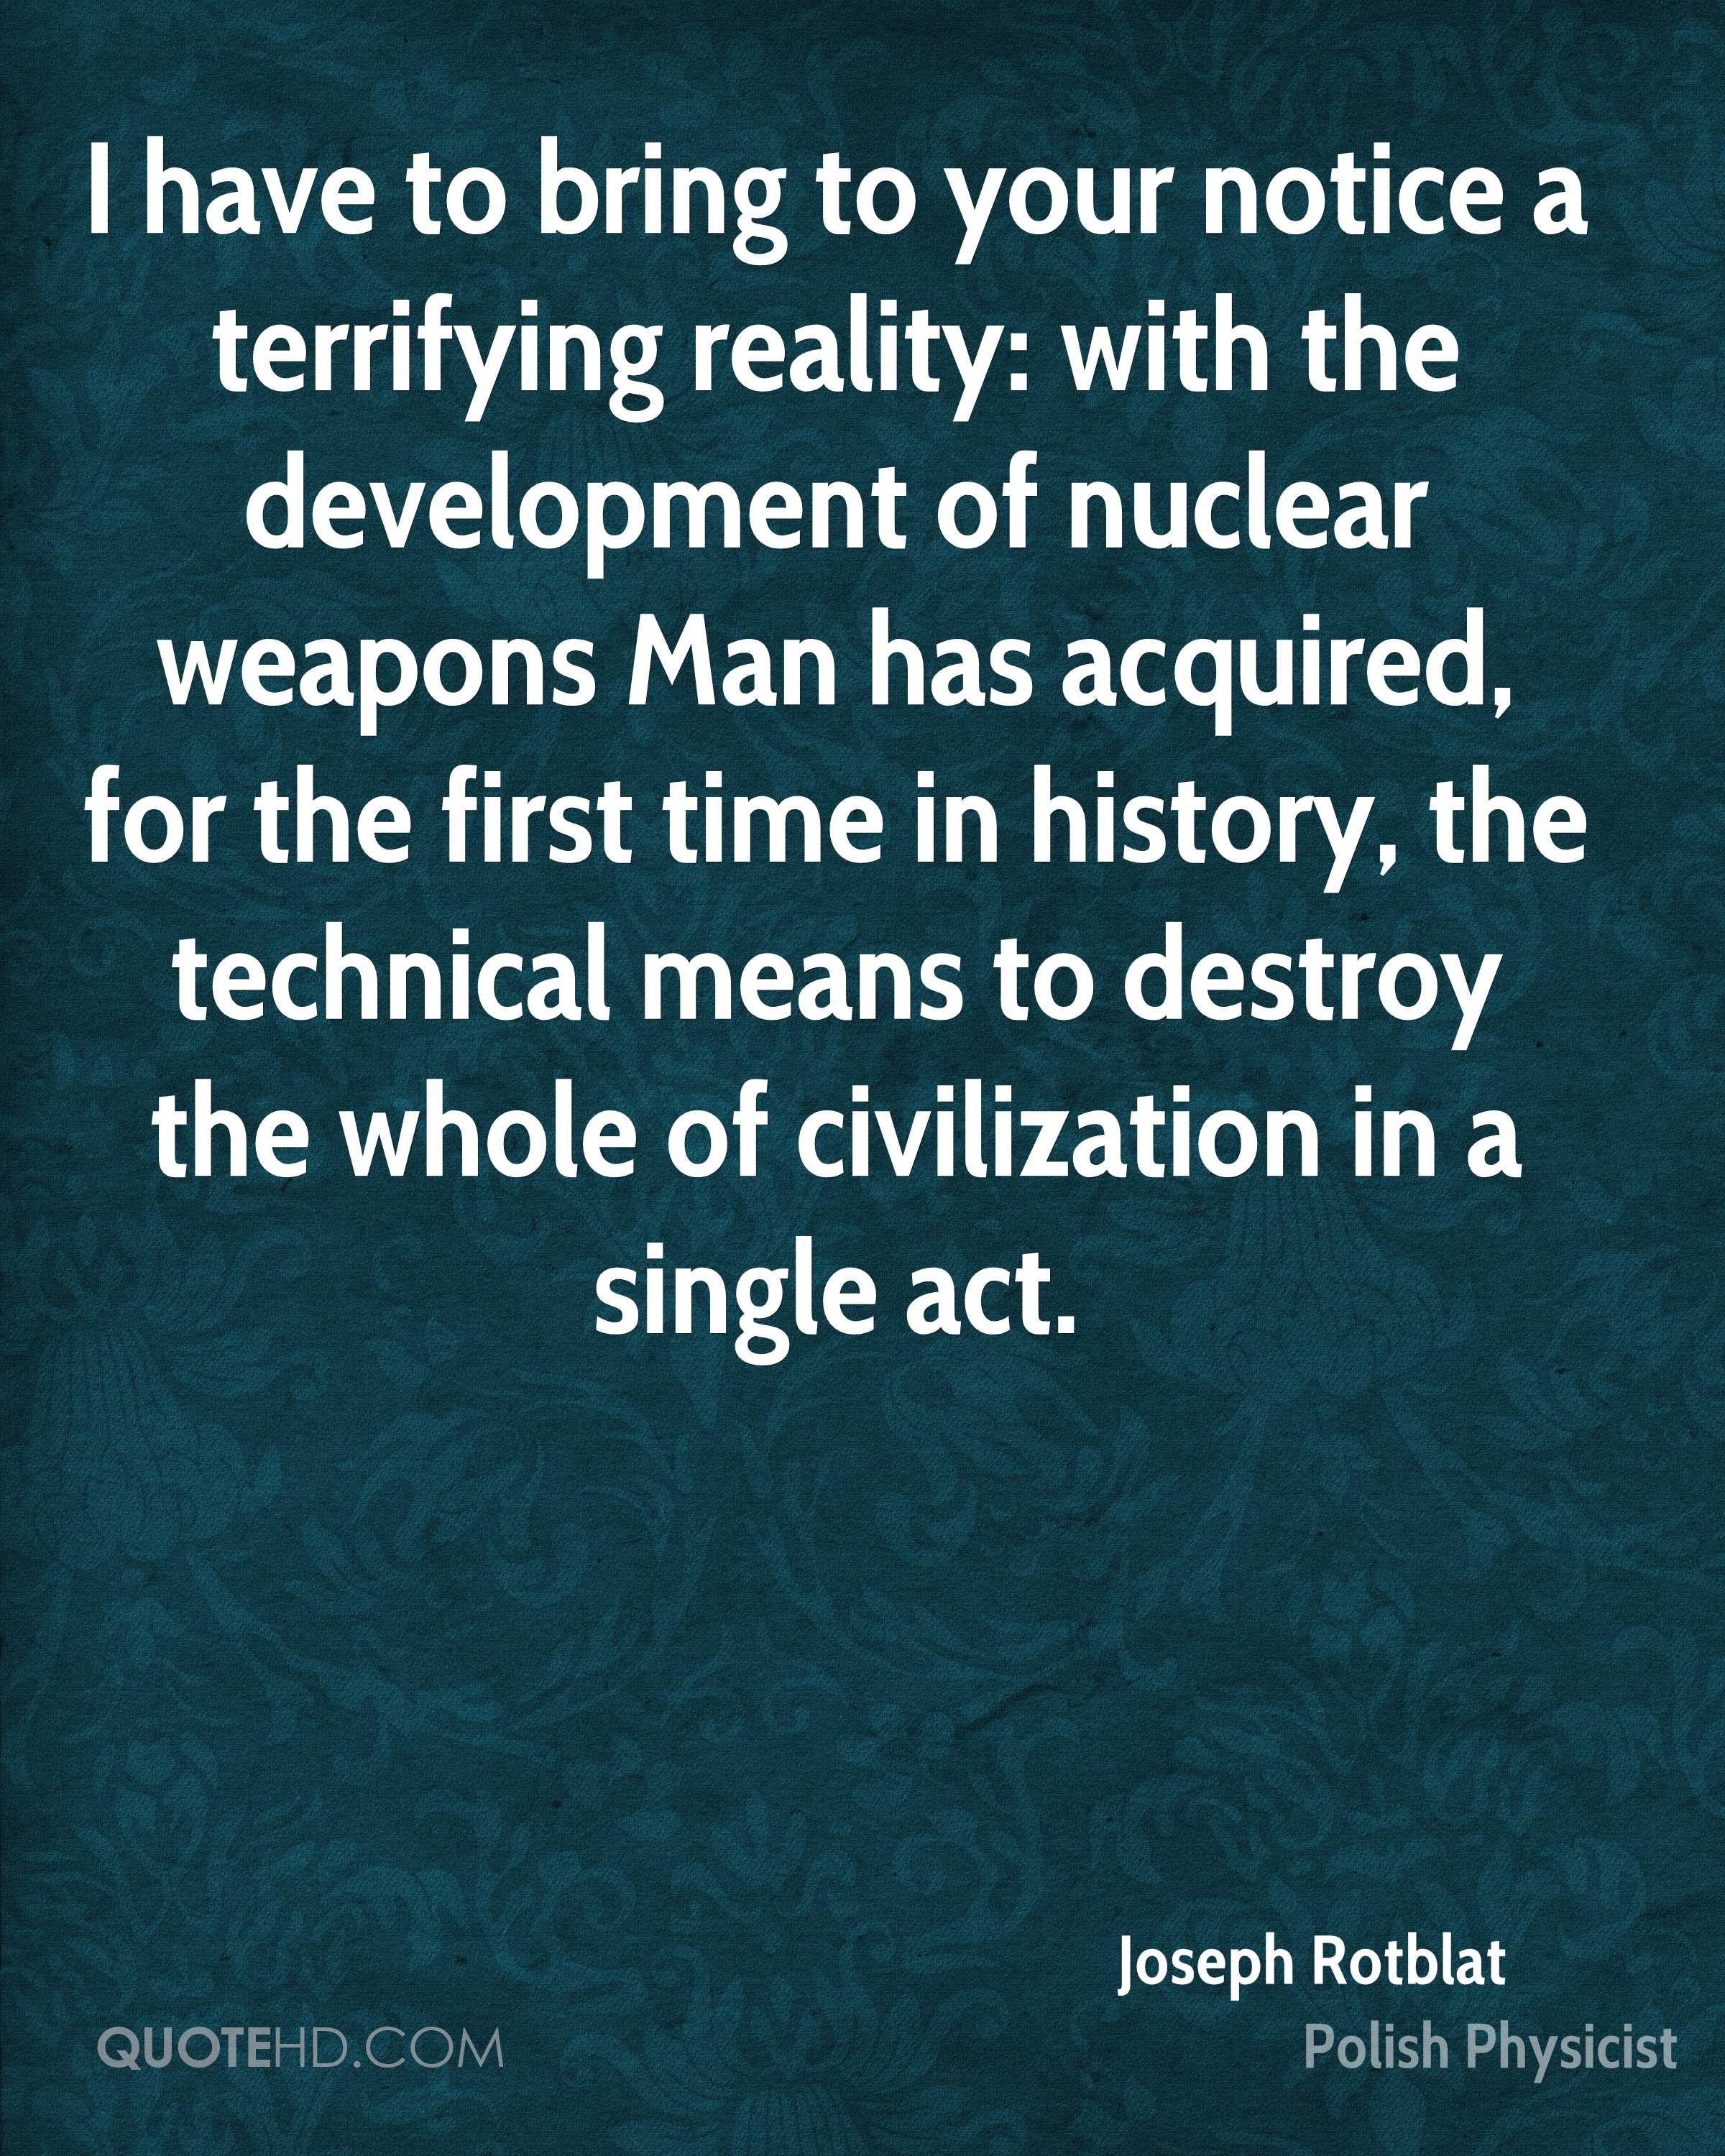 I have to bring to your notice a terrifying reality: with the development of nuclear weapons Man has acquired, for the first time in history, the technical means to destroy the whole of civilization in a single act.